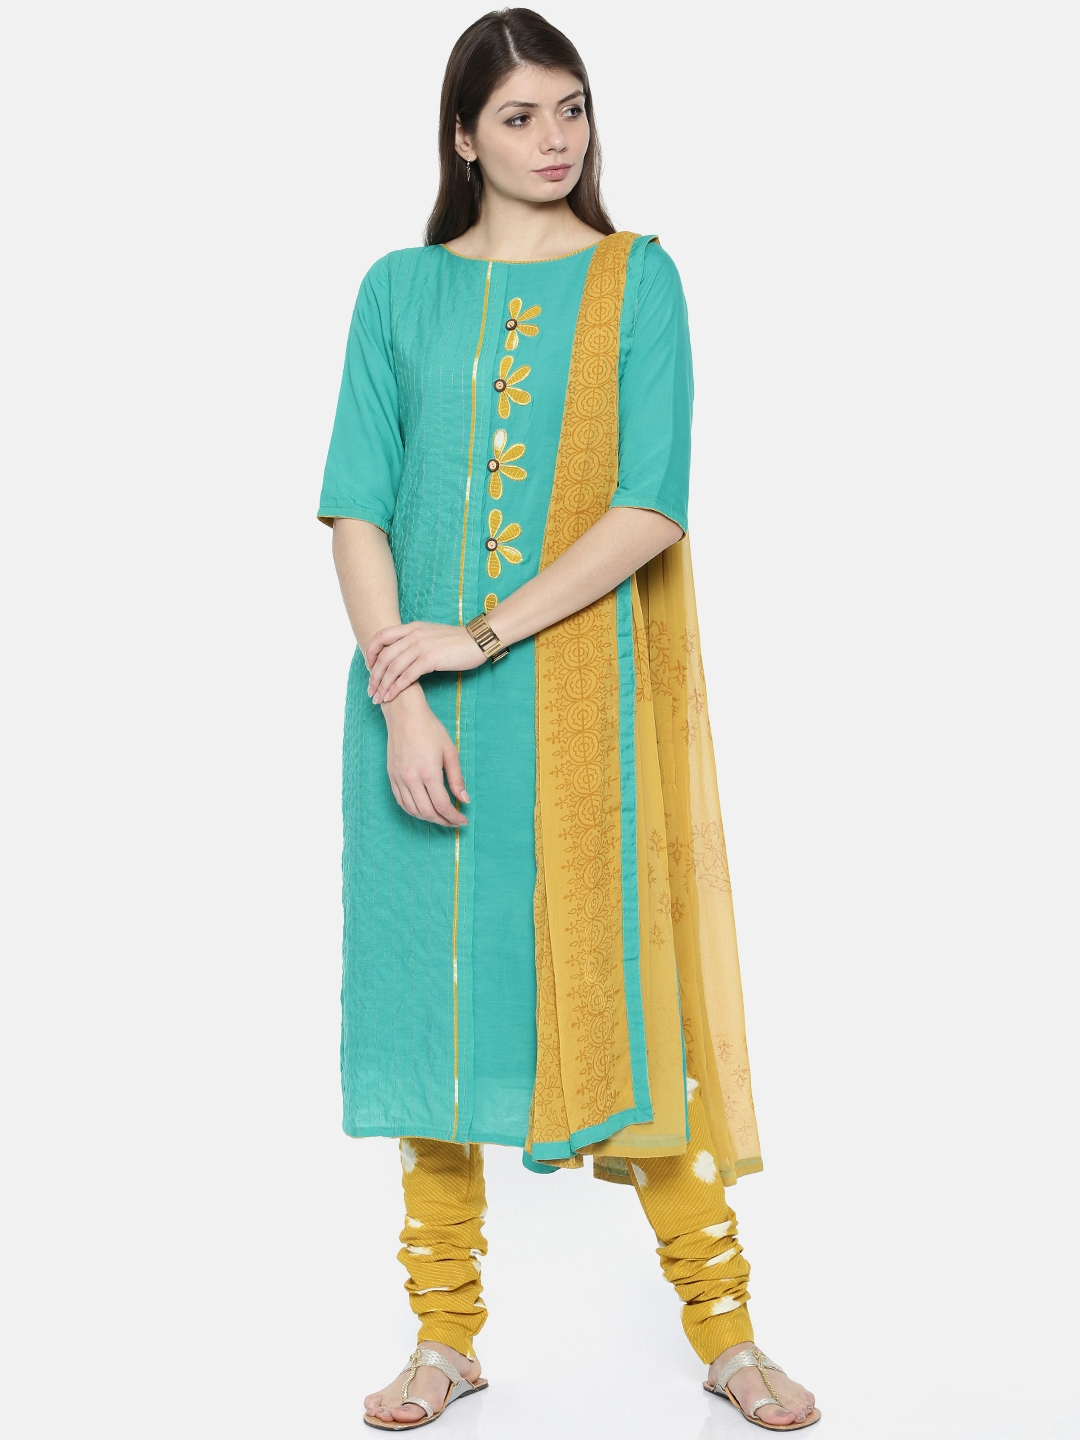 The Chennai Silks Blue & Mustard Yellow Pure Cotton Unstitched Dress  Material